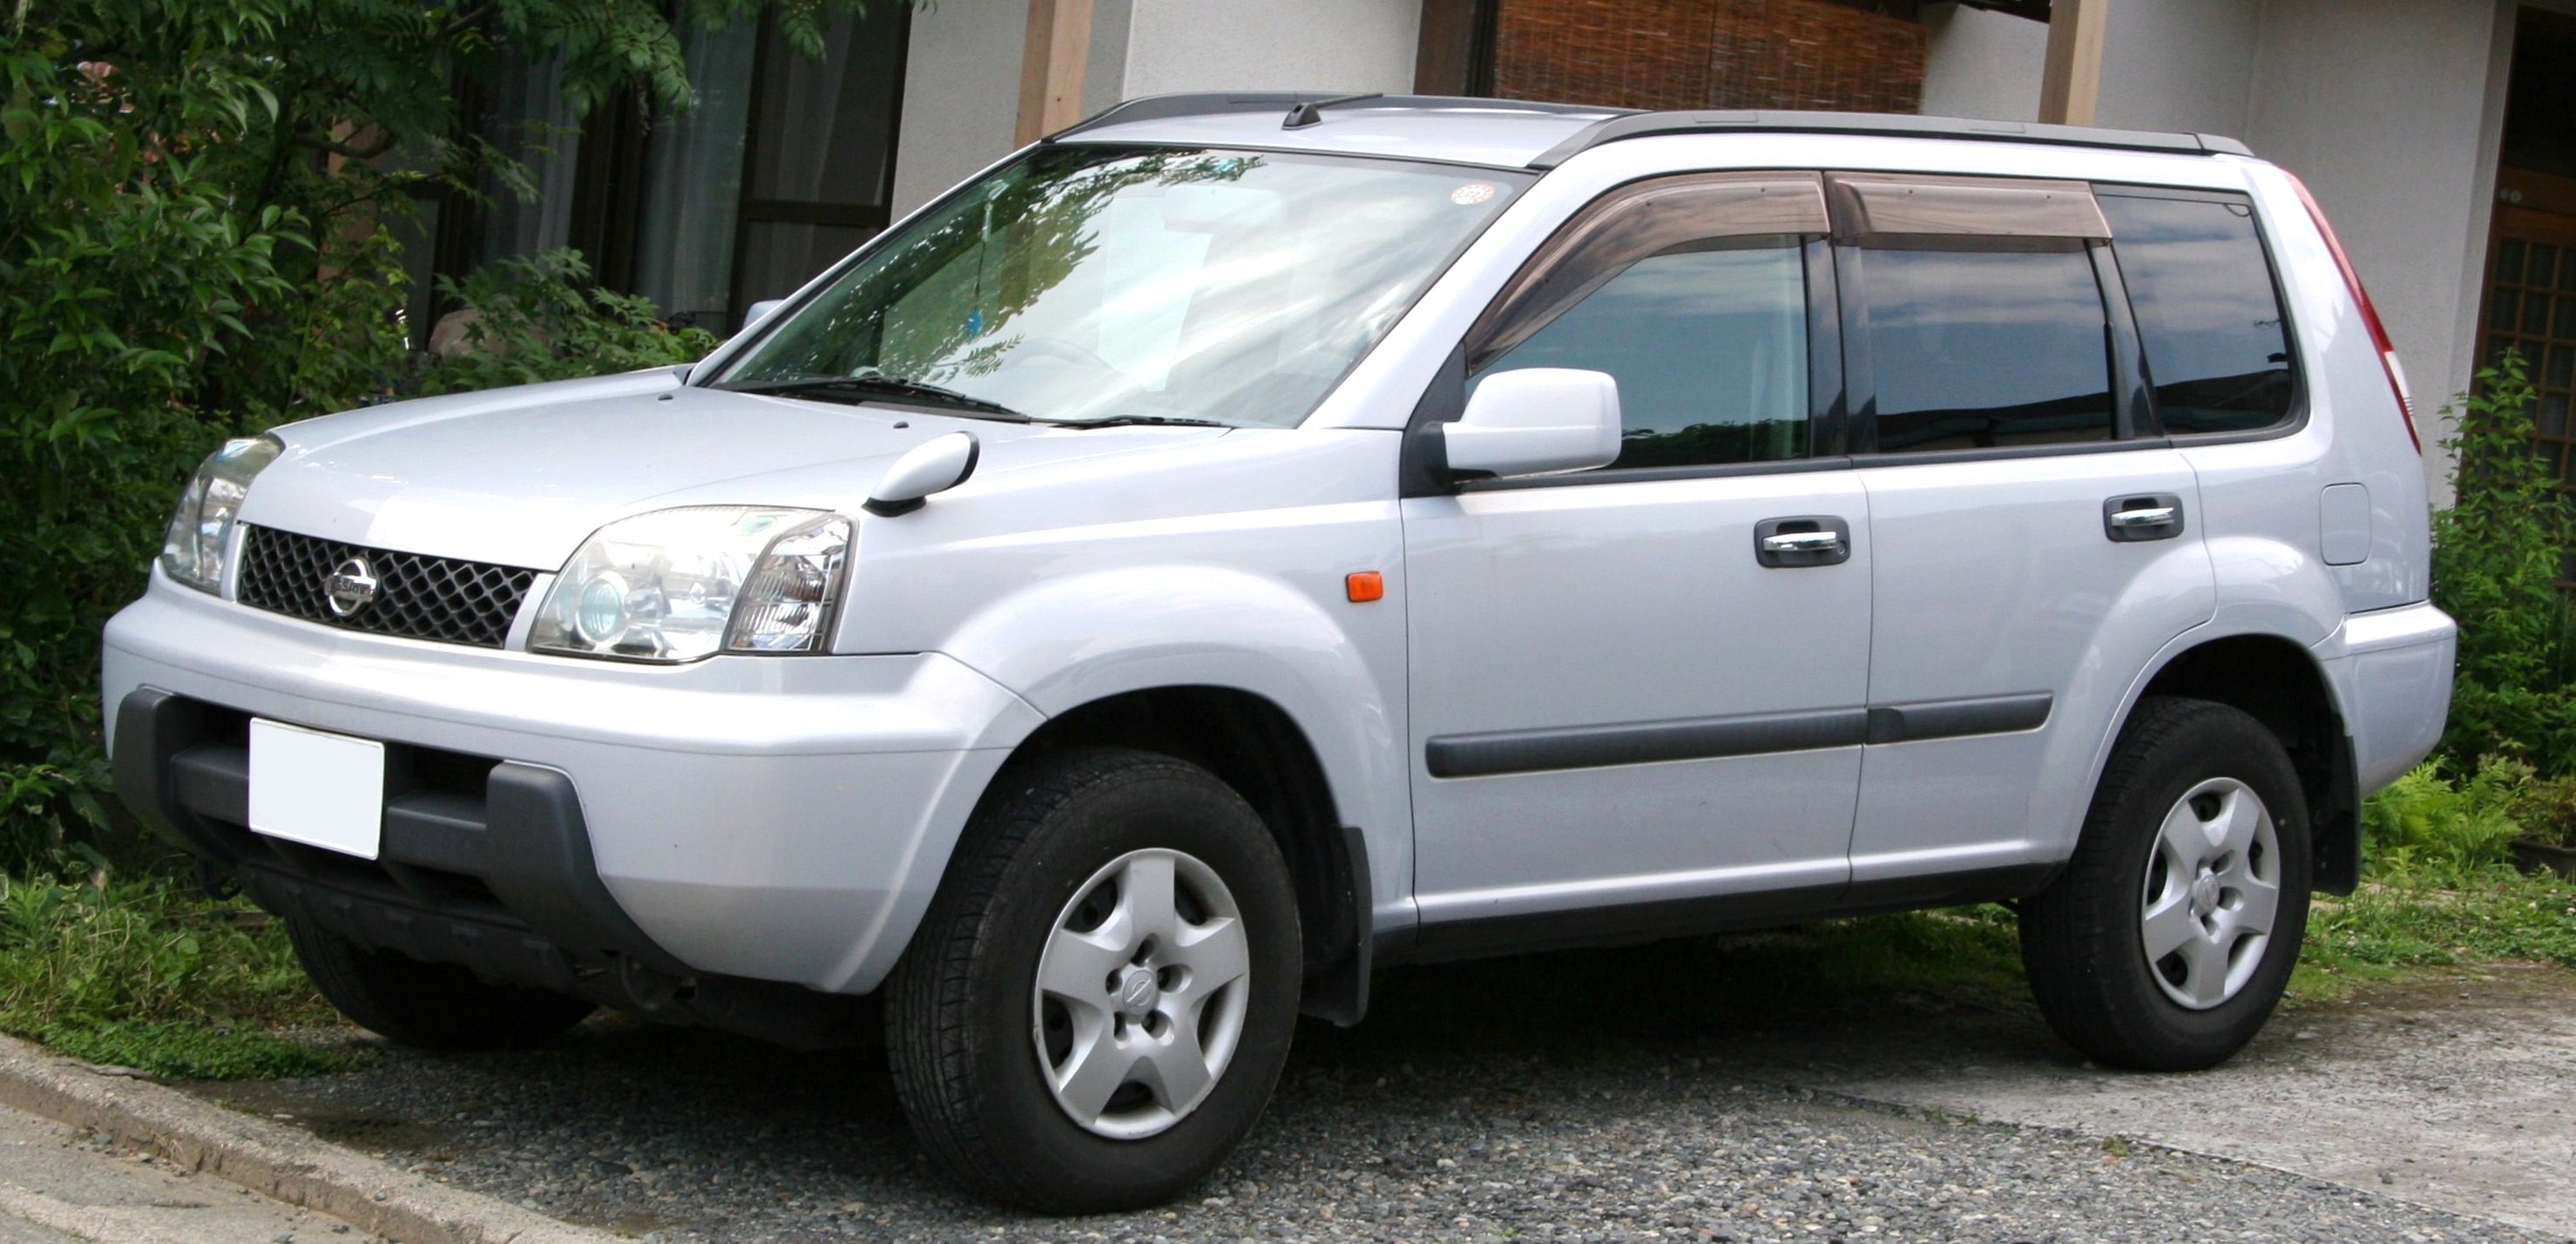 Nissan x-trail photo - 1